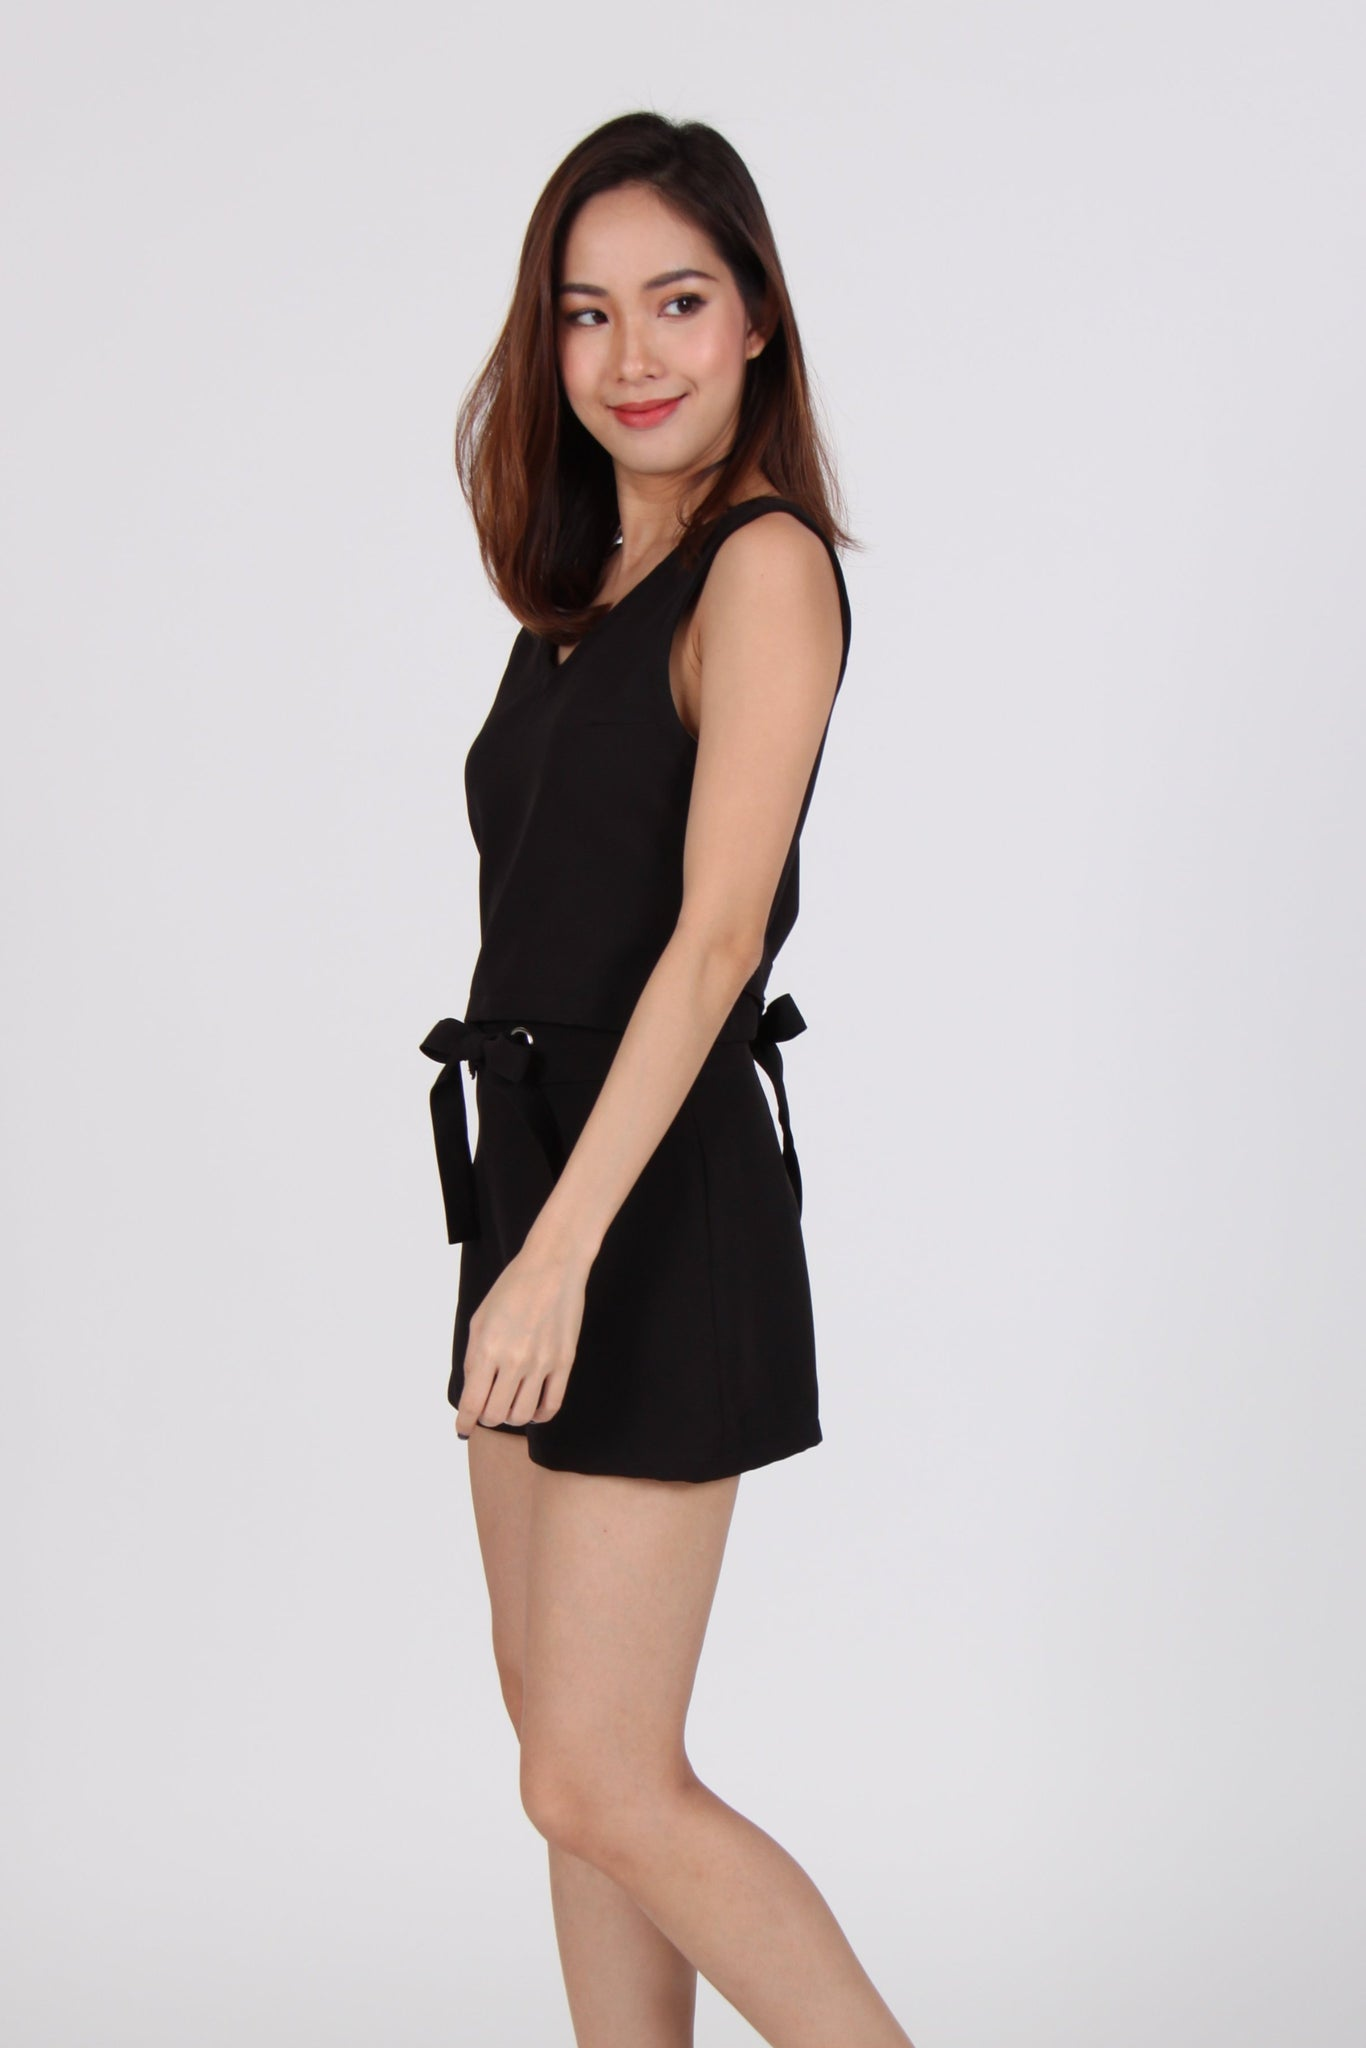 2 Piece Back Tie Top with Shorts in Black